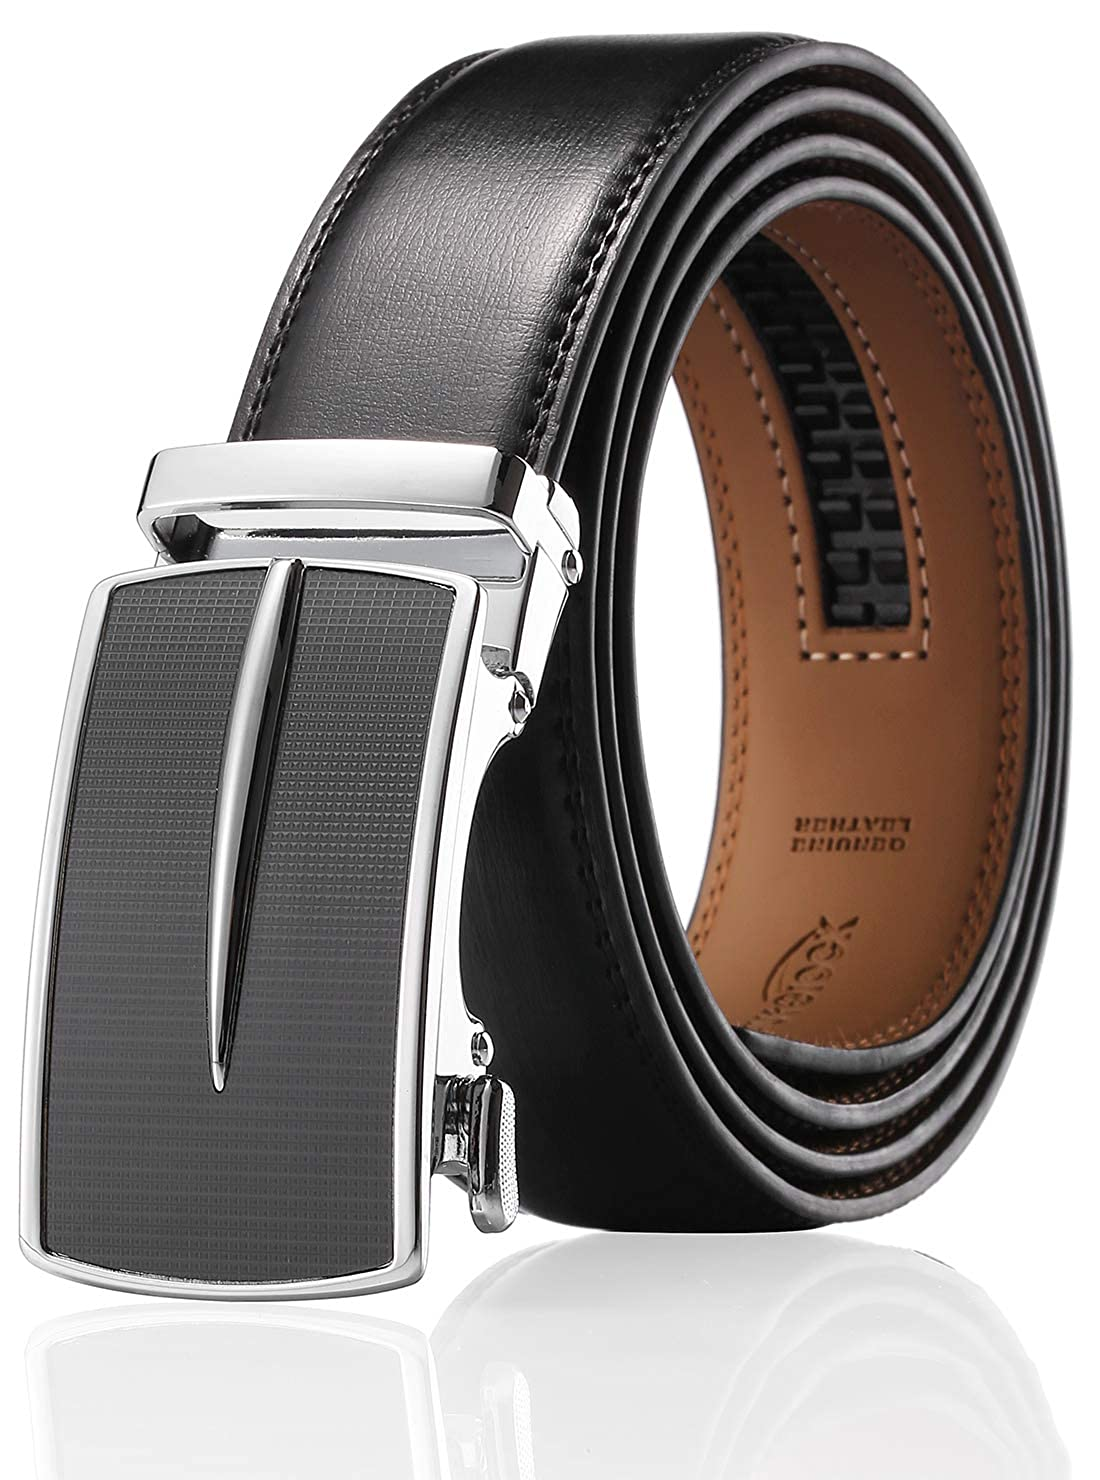 Enclosed in an Elegant Gift Box Autolock Leather Ratchet Dress Belt for Men With Automatic Buckle Mens Belt